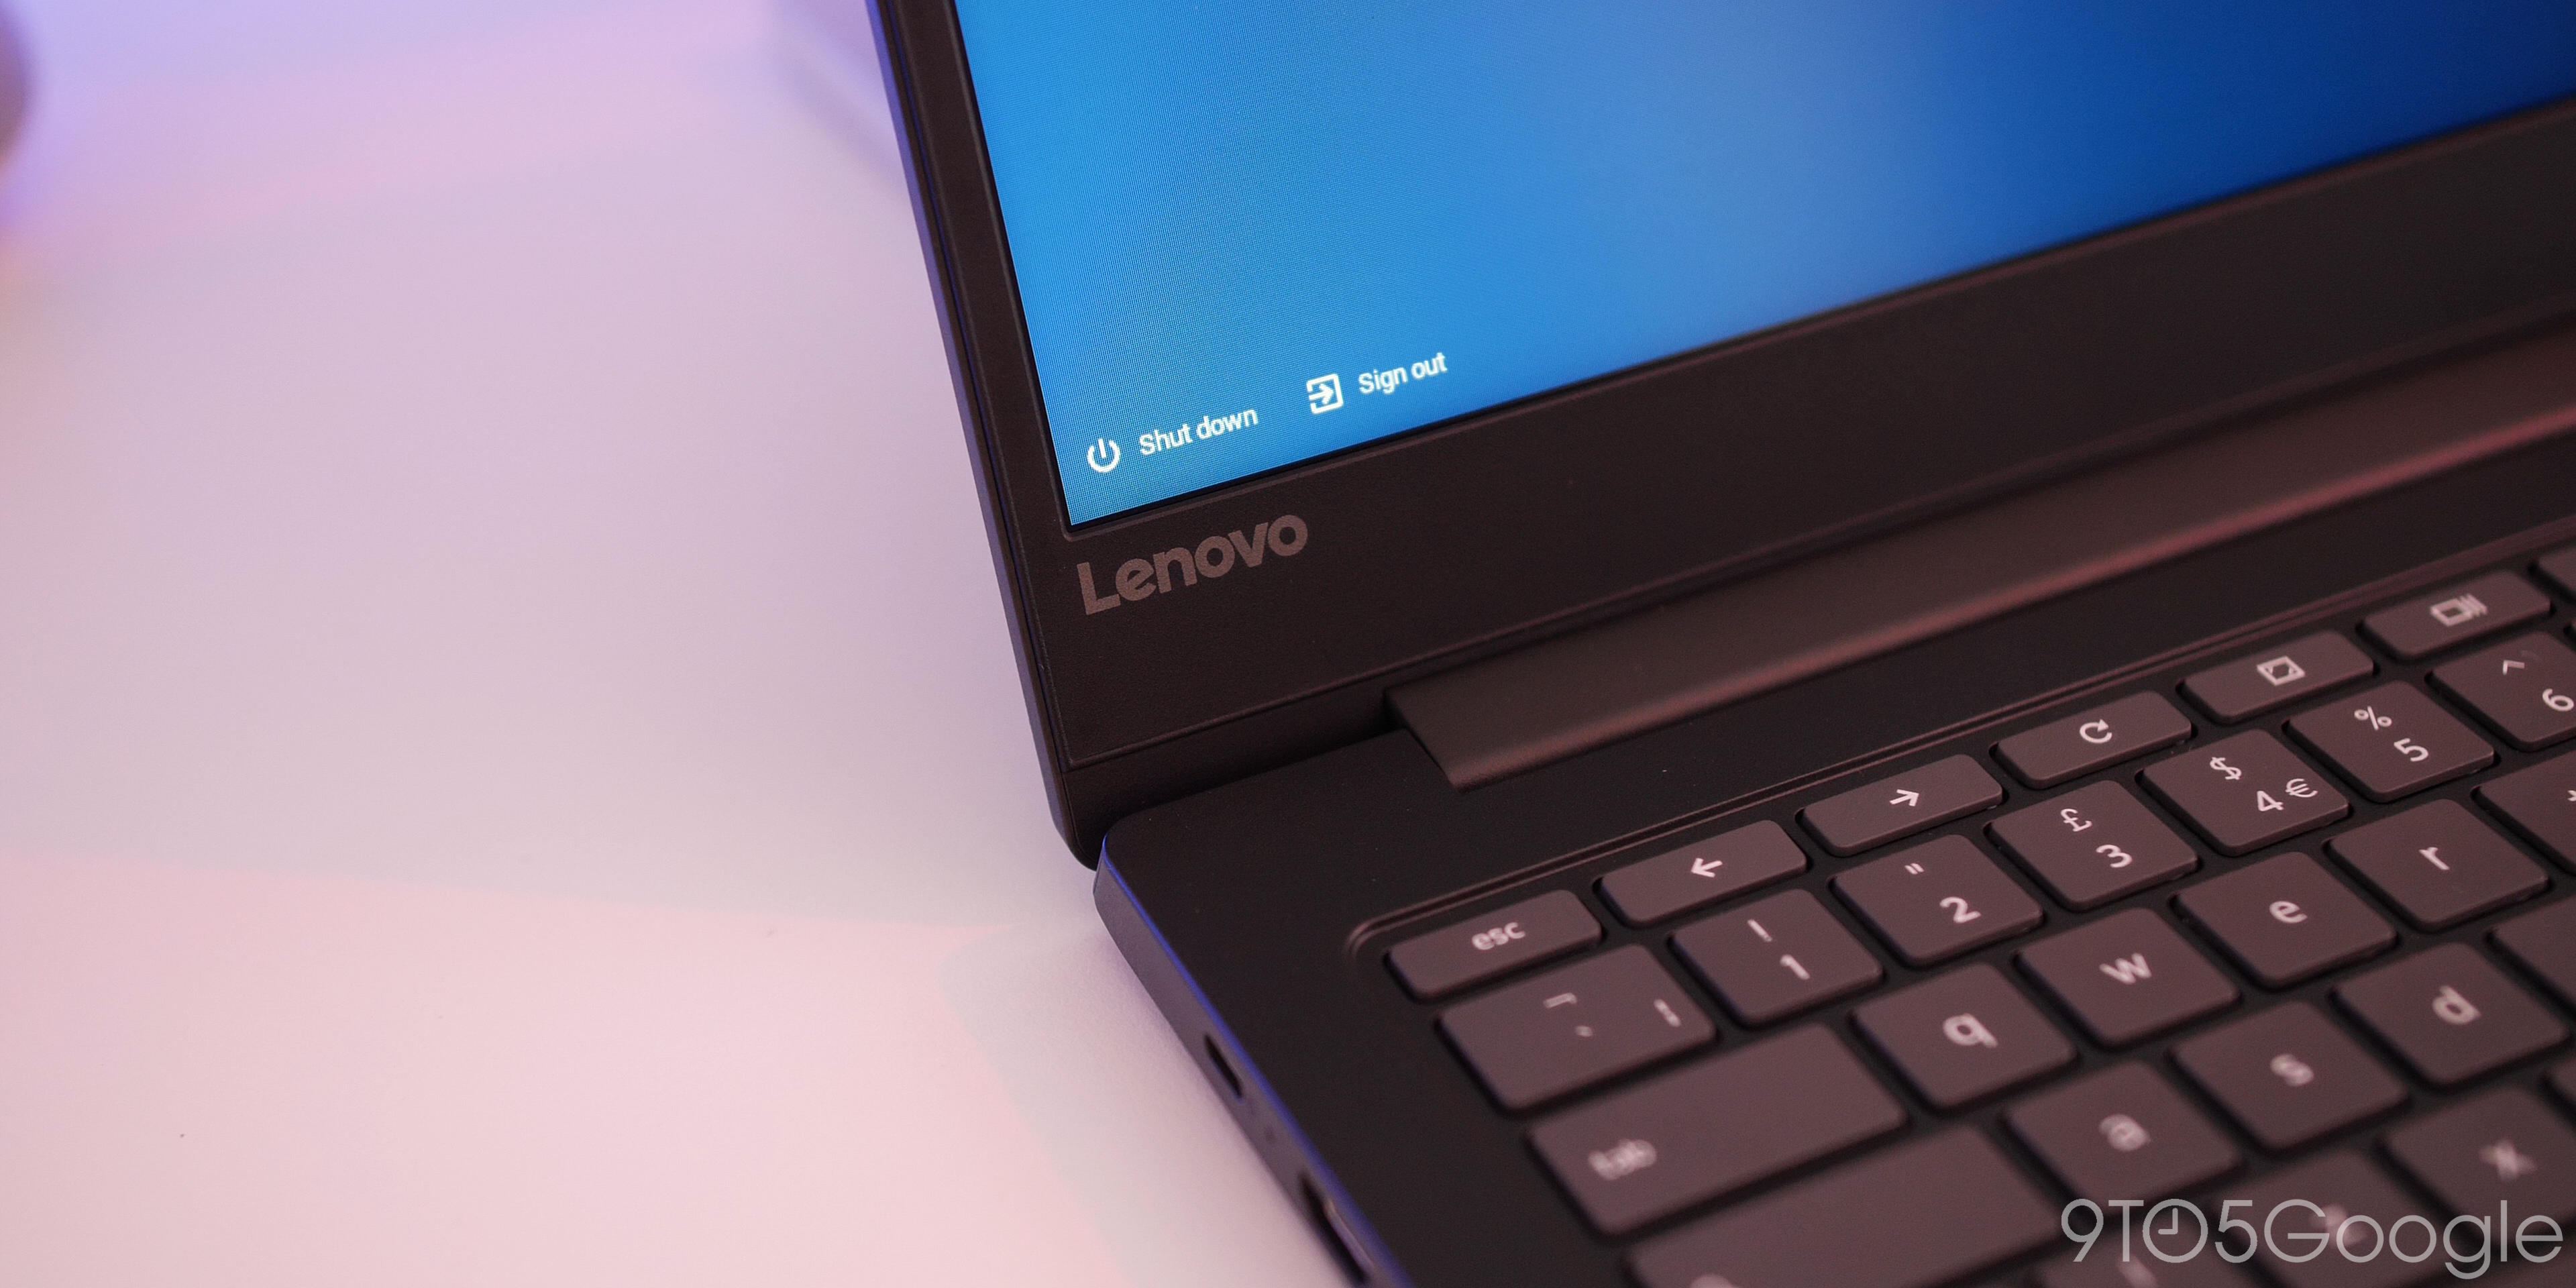 Lenovo S330 review: The benchmark for budget laptops